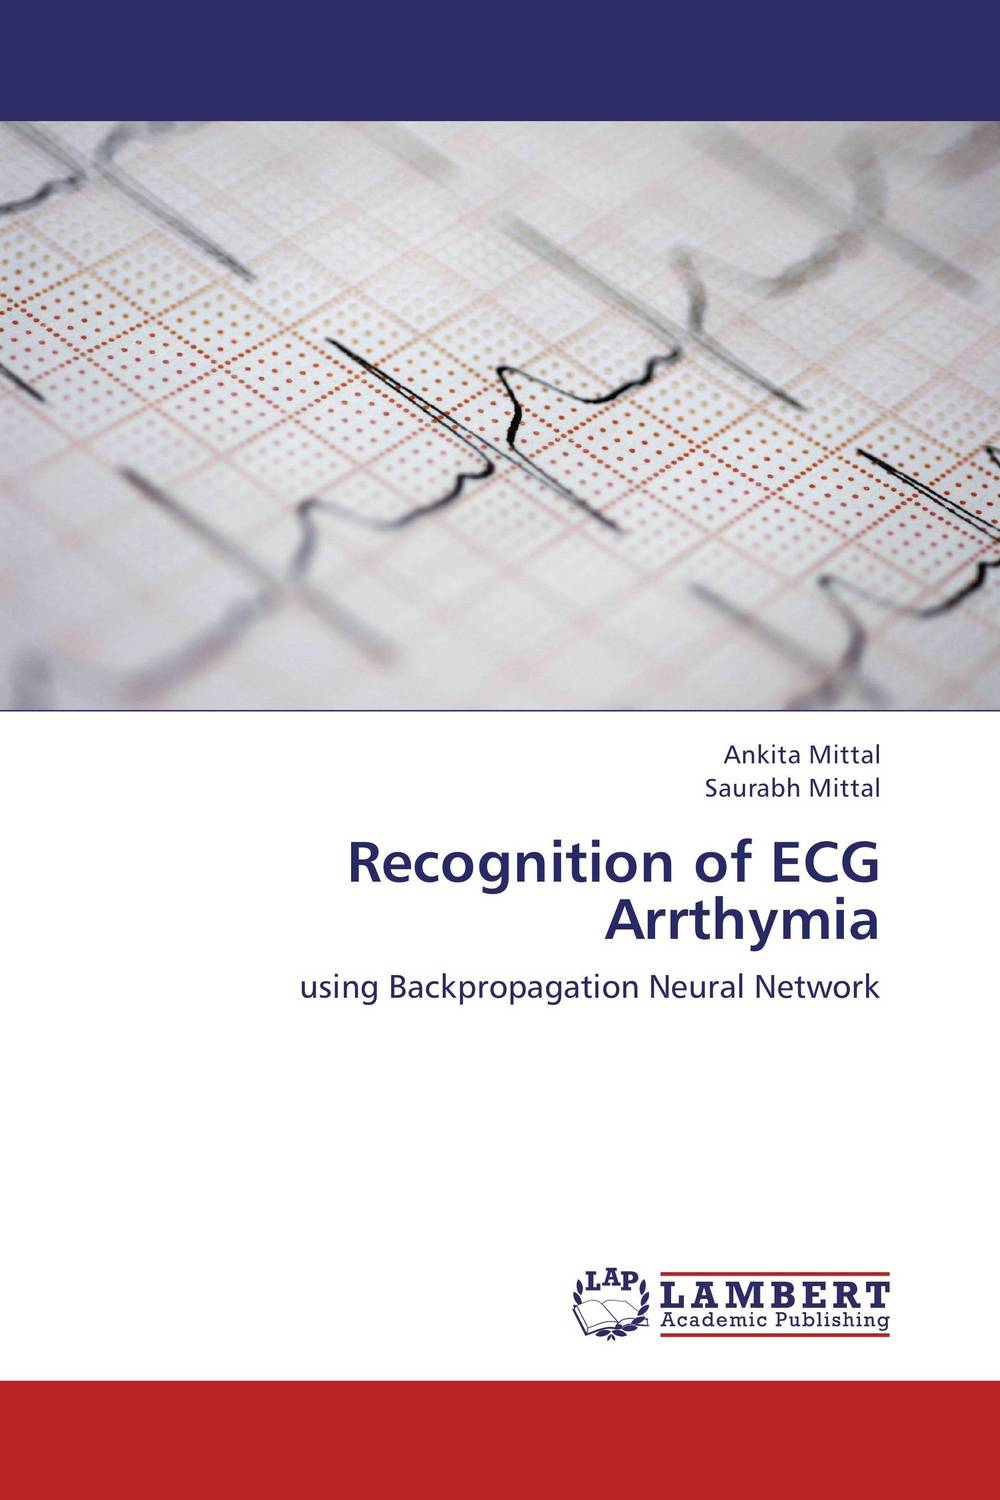 Recognition of ECG Arrthymia web spam detection application using neural network